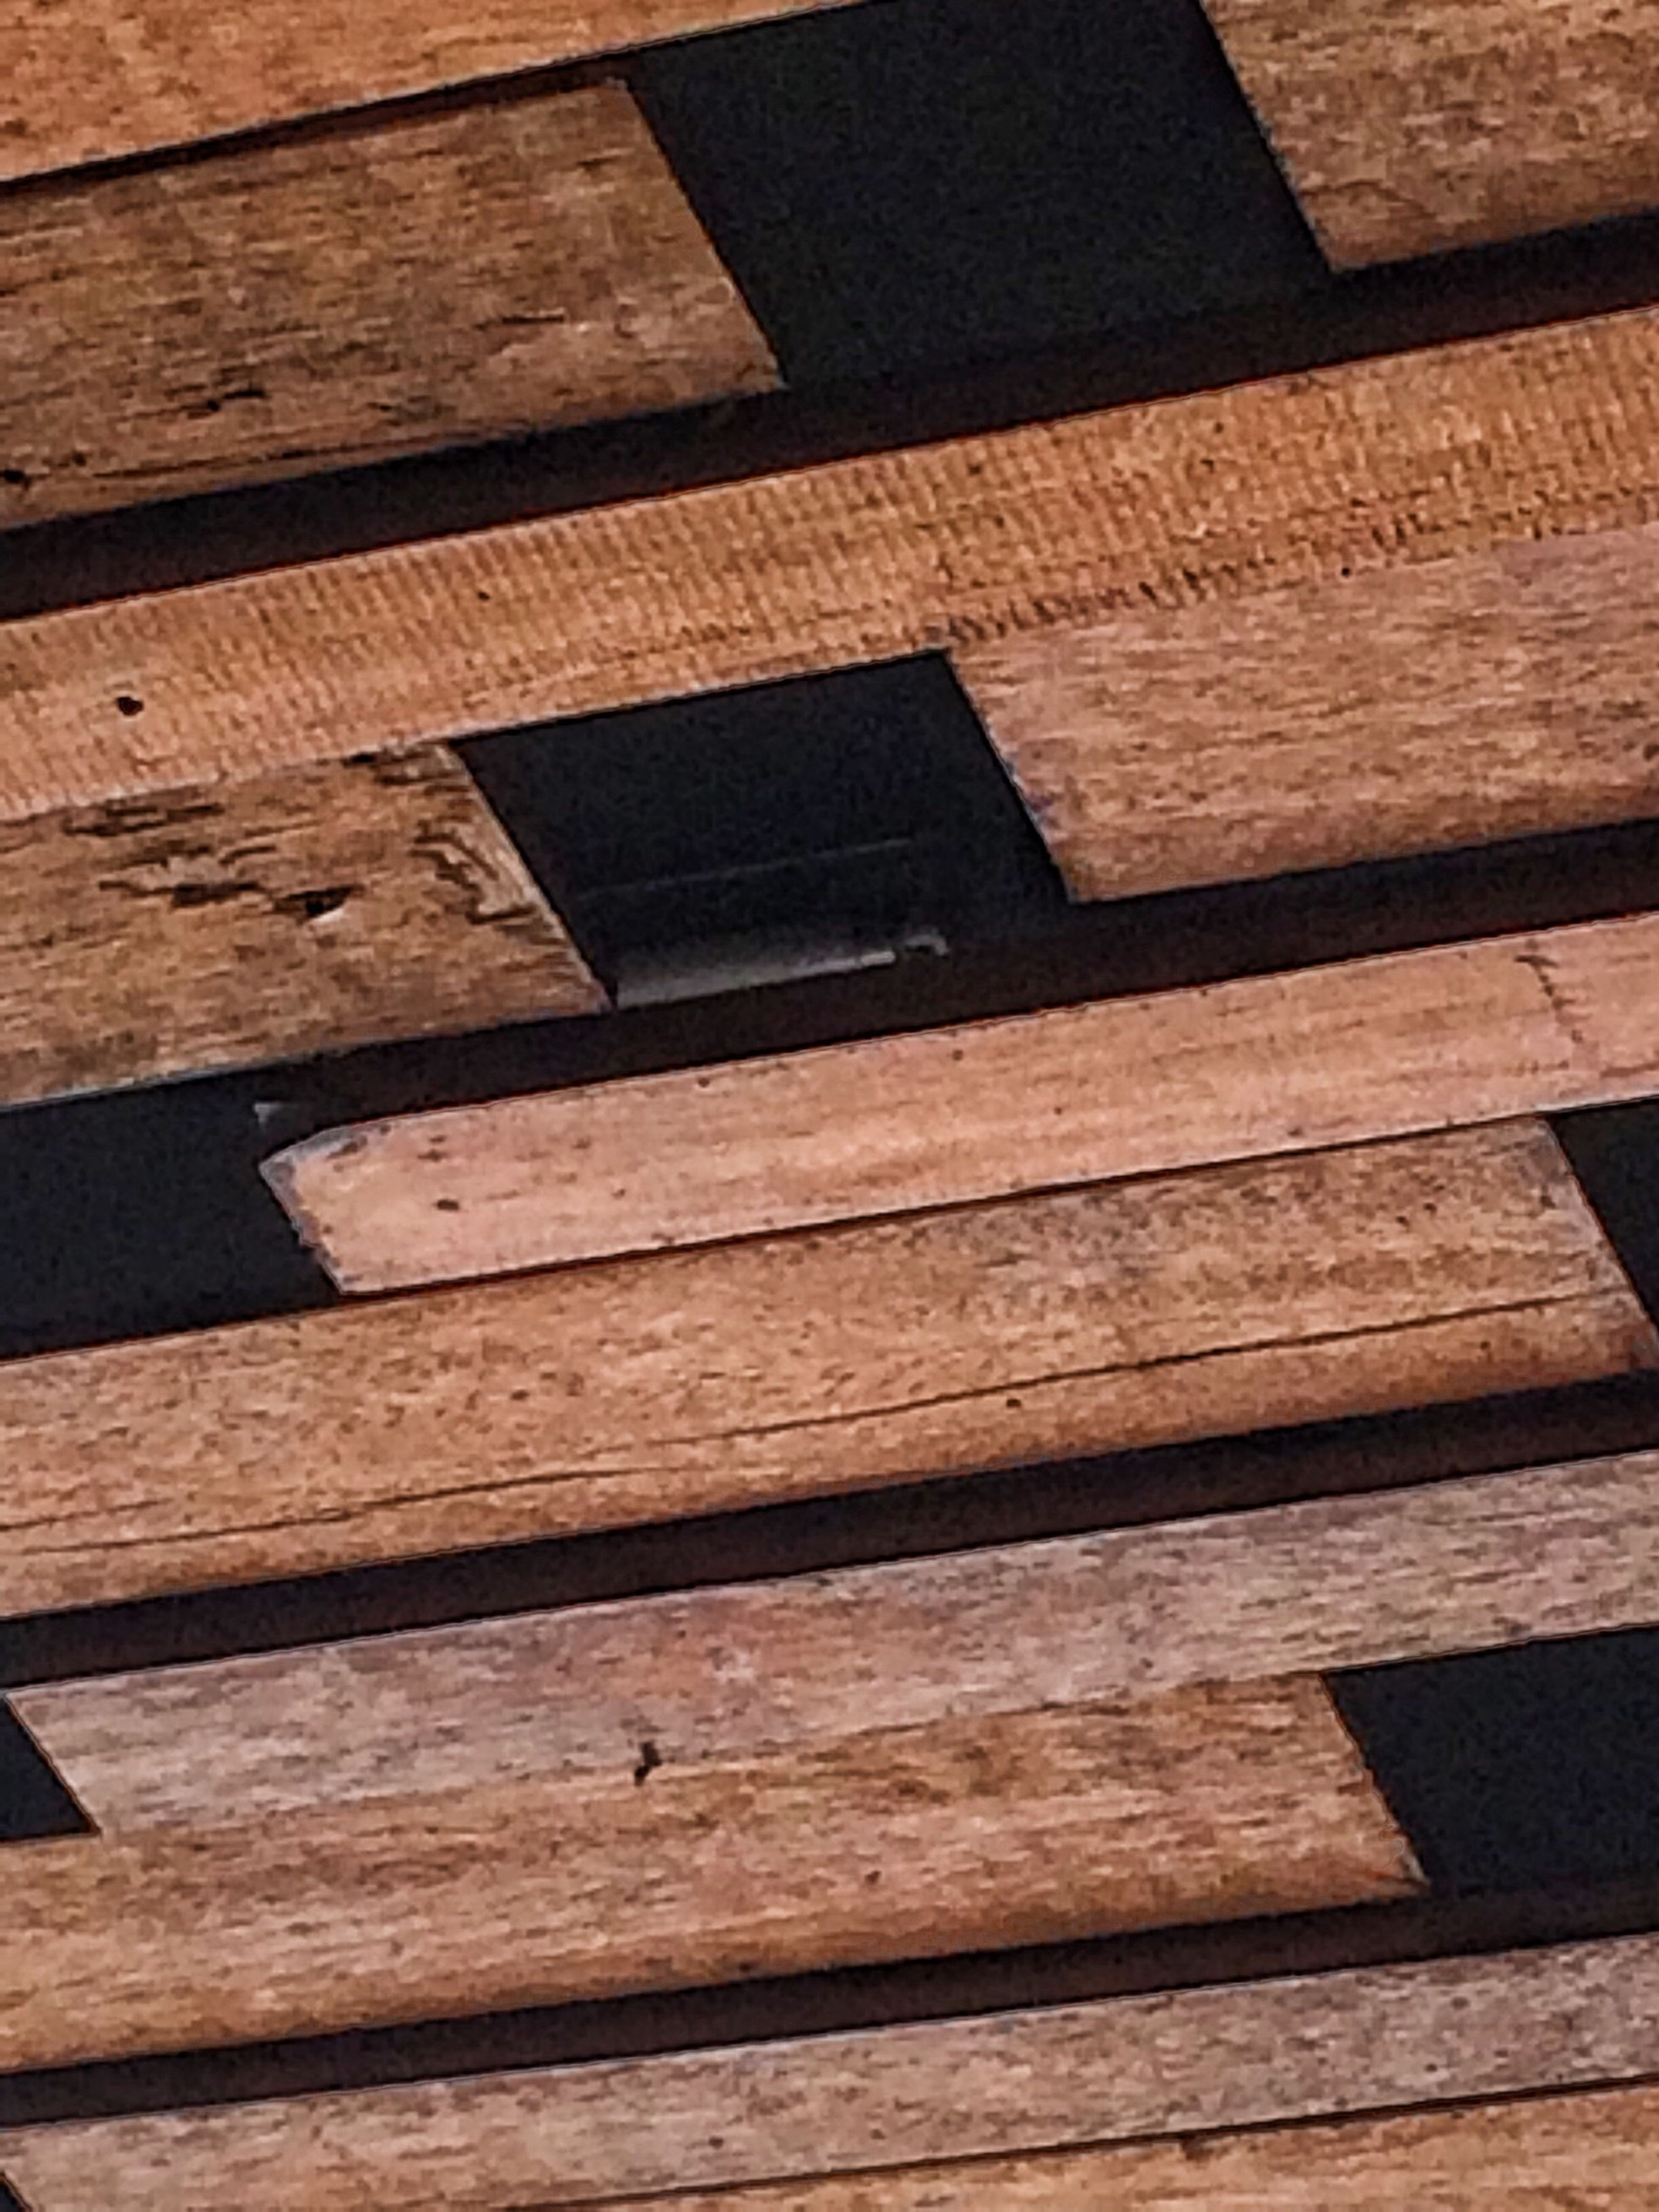 wood - material, wooden, high angle view, full frame, pattern, backgrounds, wood, plank, indoors, textured, close-up, shadow, no people, boardwalk, hardwood floor, sunlight, flooring, table, built structure, day